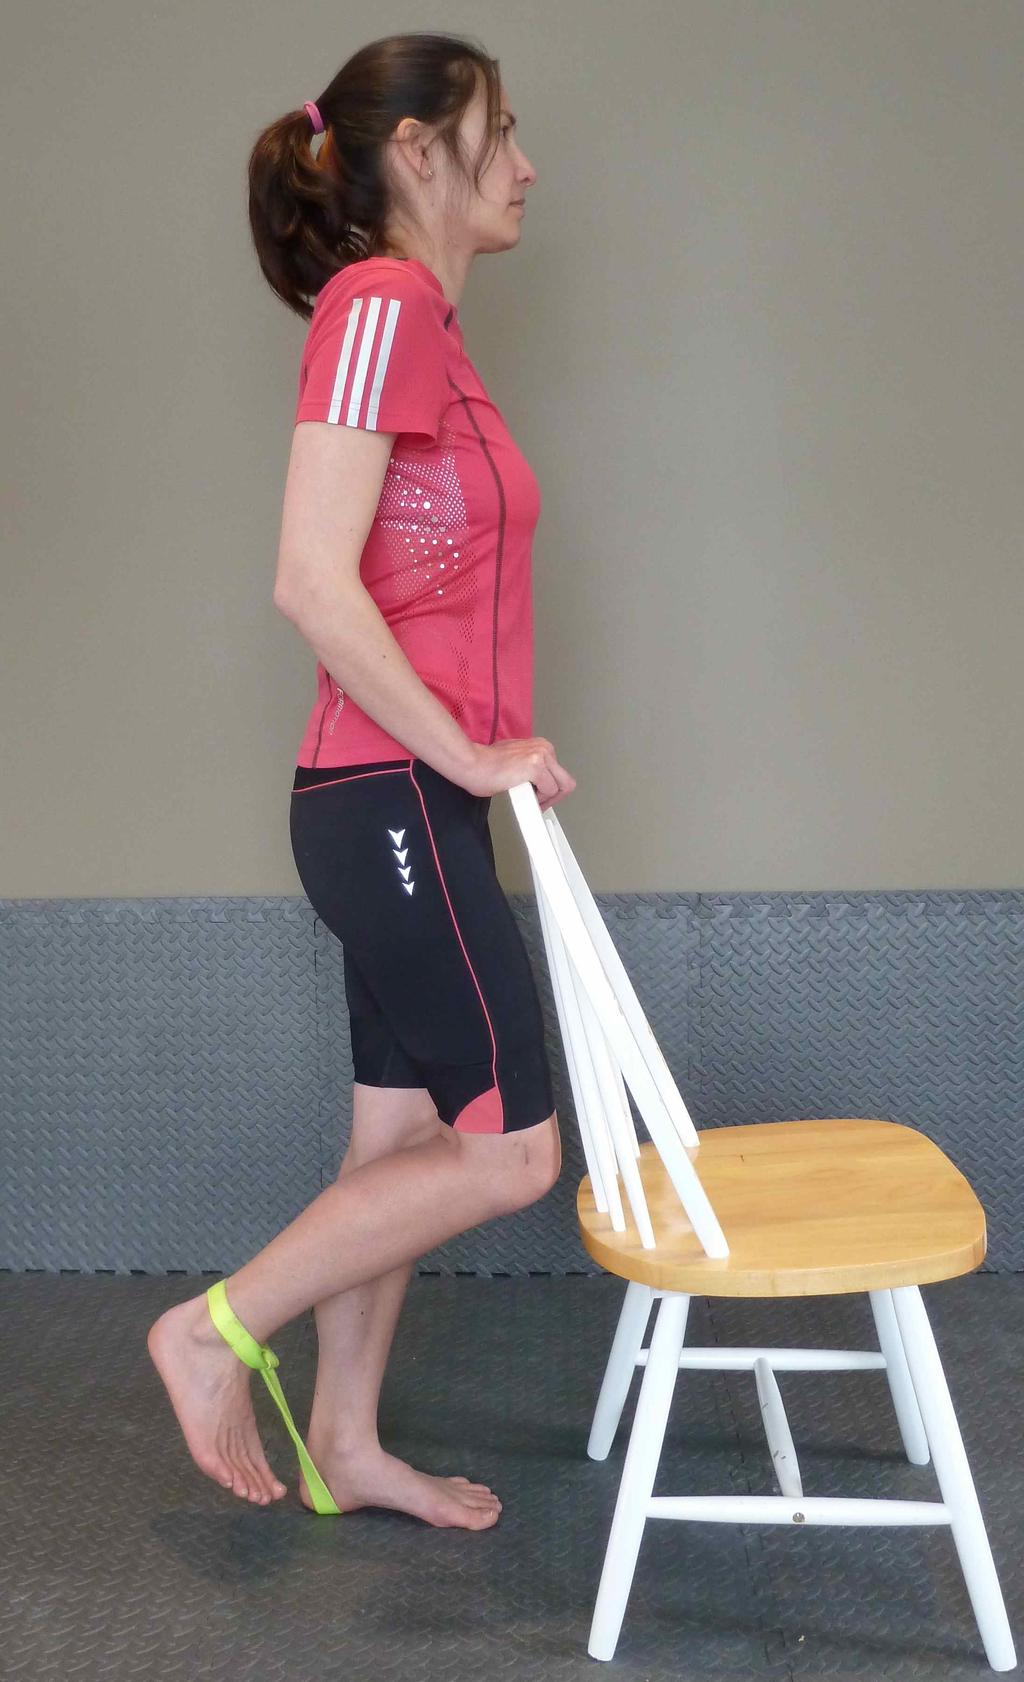 Have a resistance band secured at ground level and looped around your ankle.